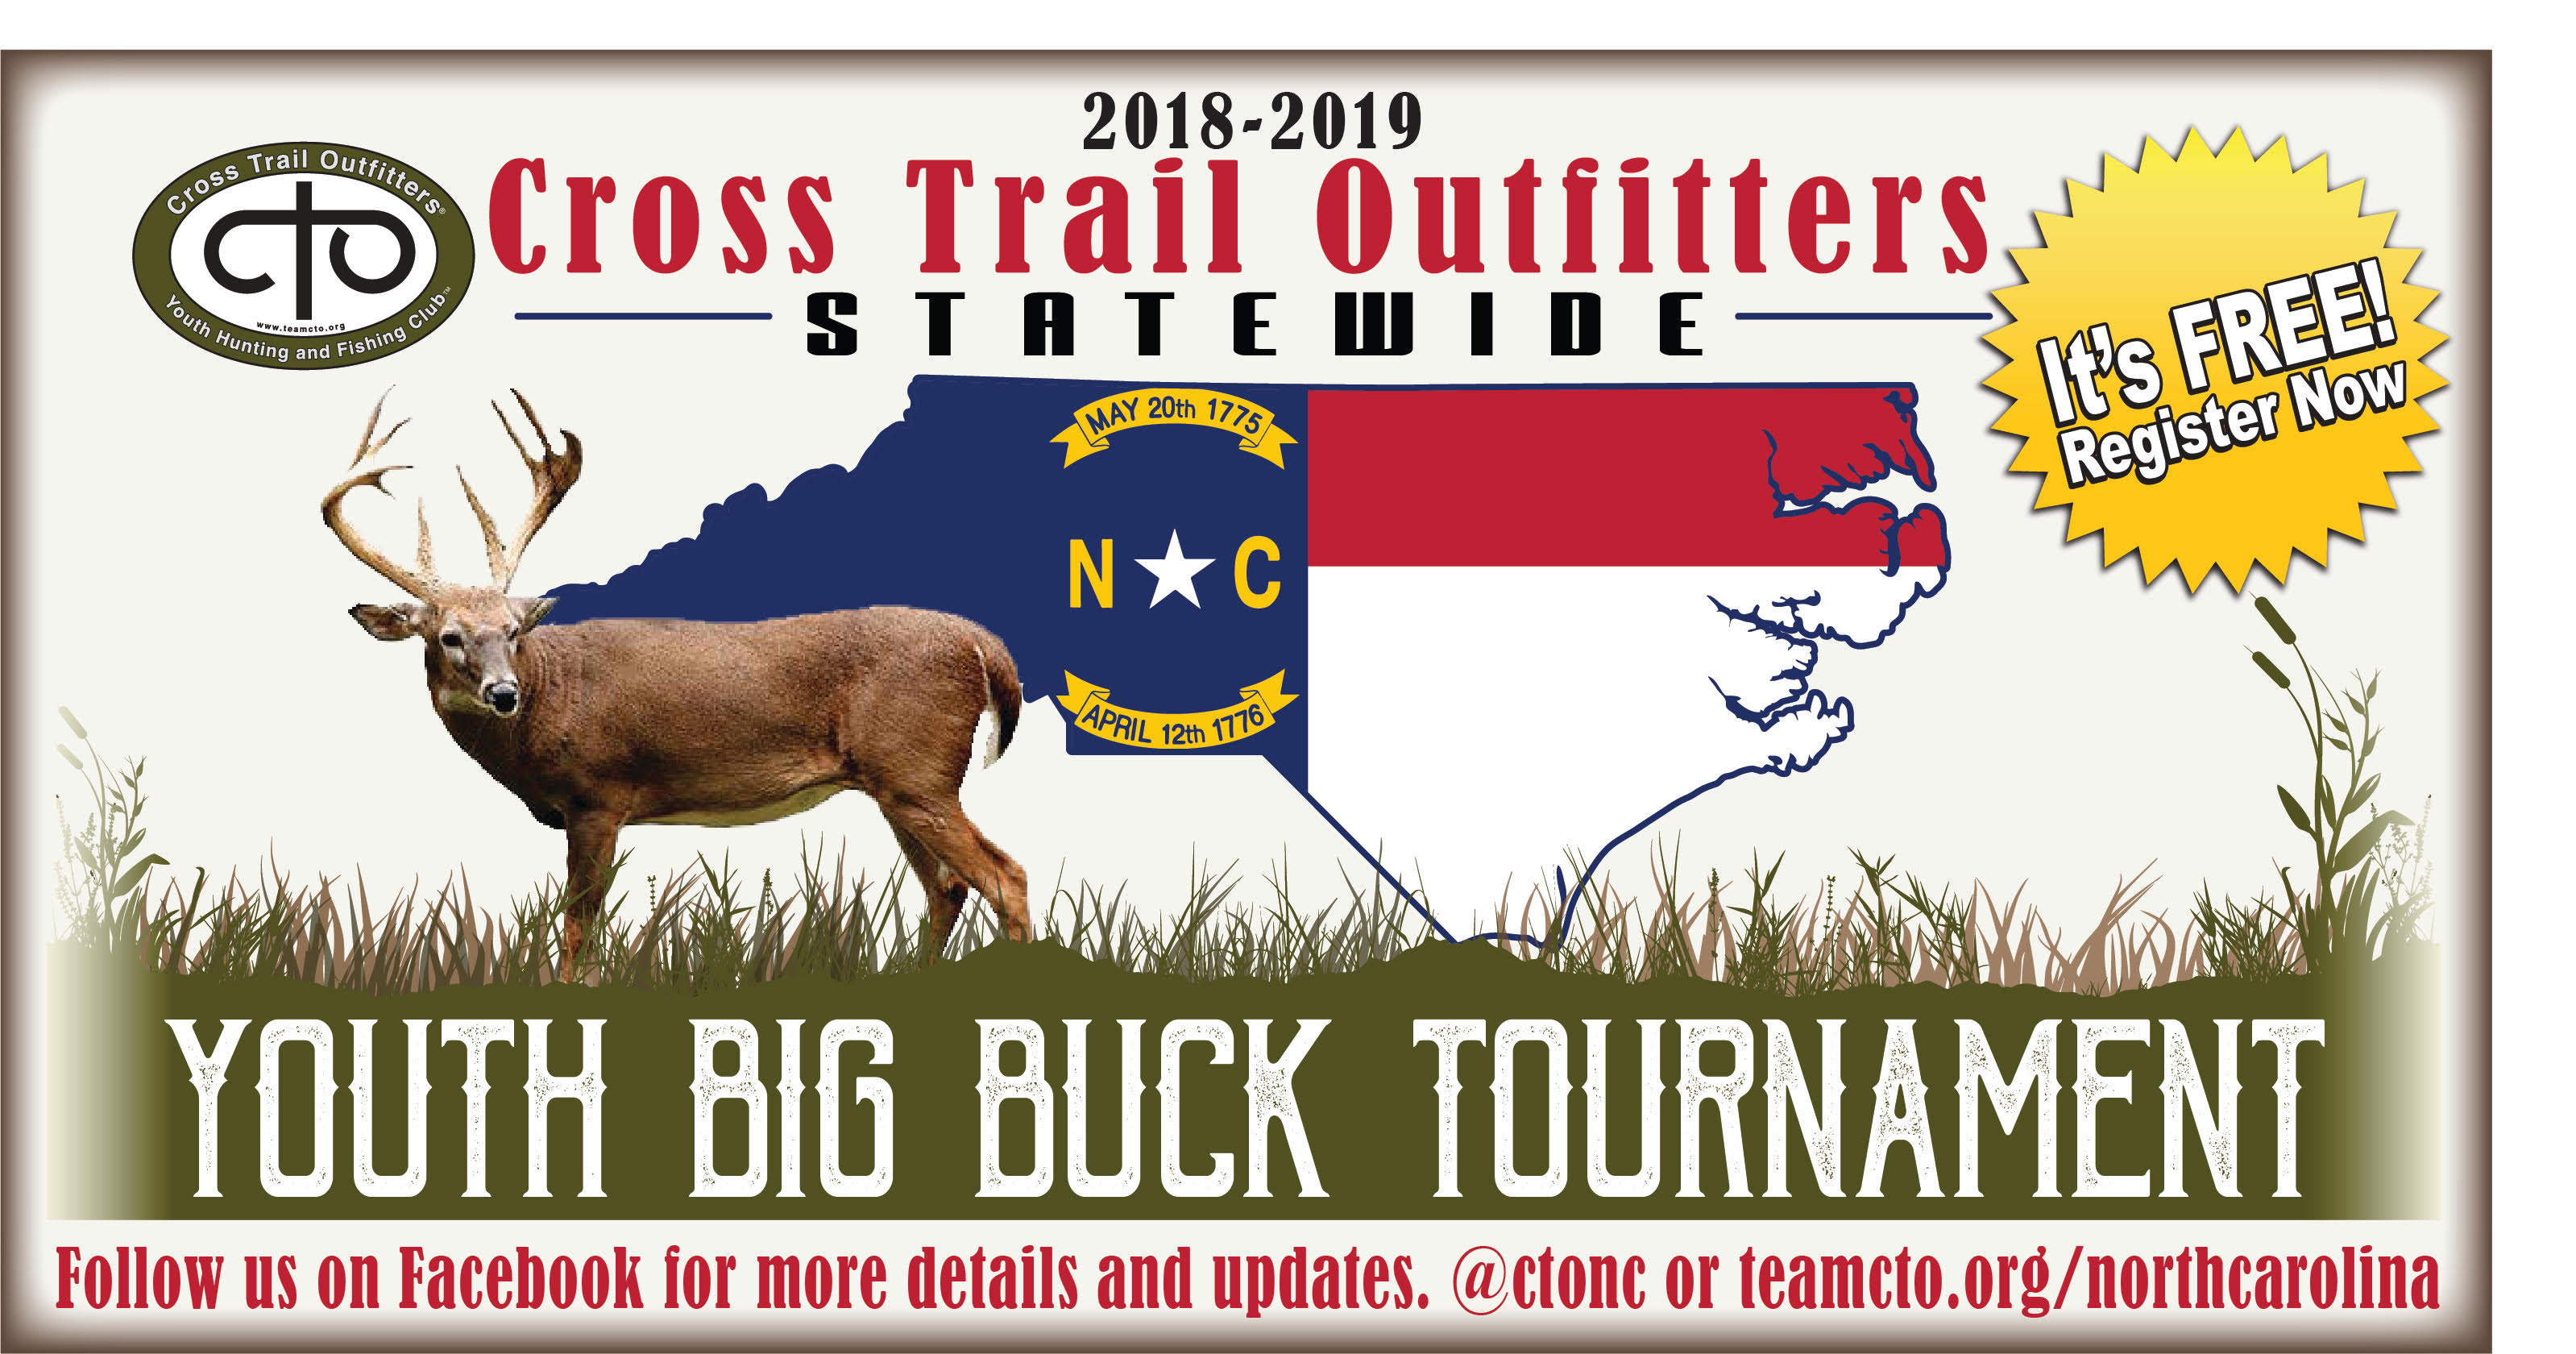 North Carolina Big Buck Tournament